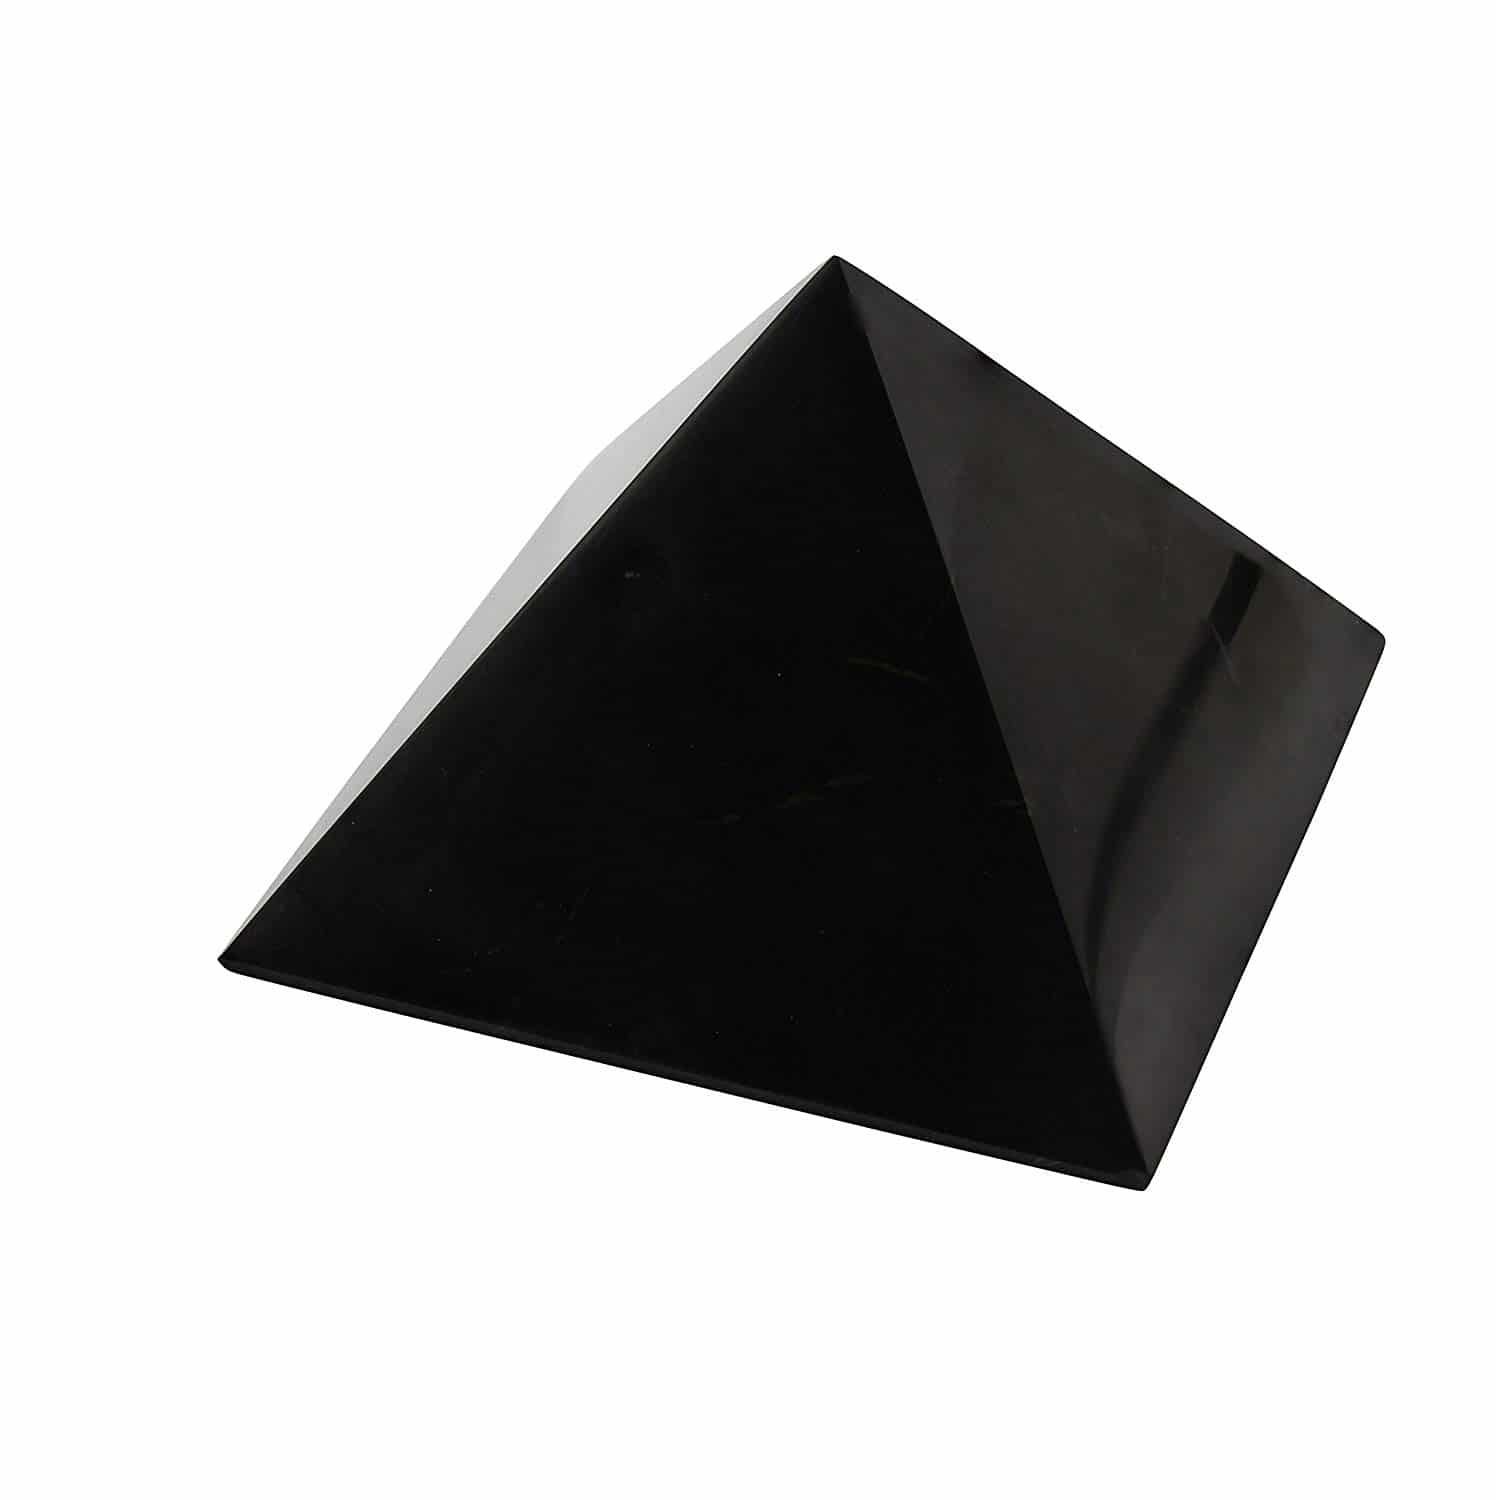 A Shungite Pyramid is a wonderufl crystal to place on your desk to clear EMF's and provide a wonderful energy.